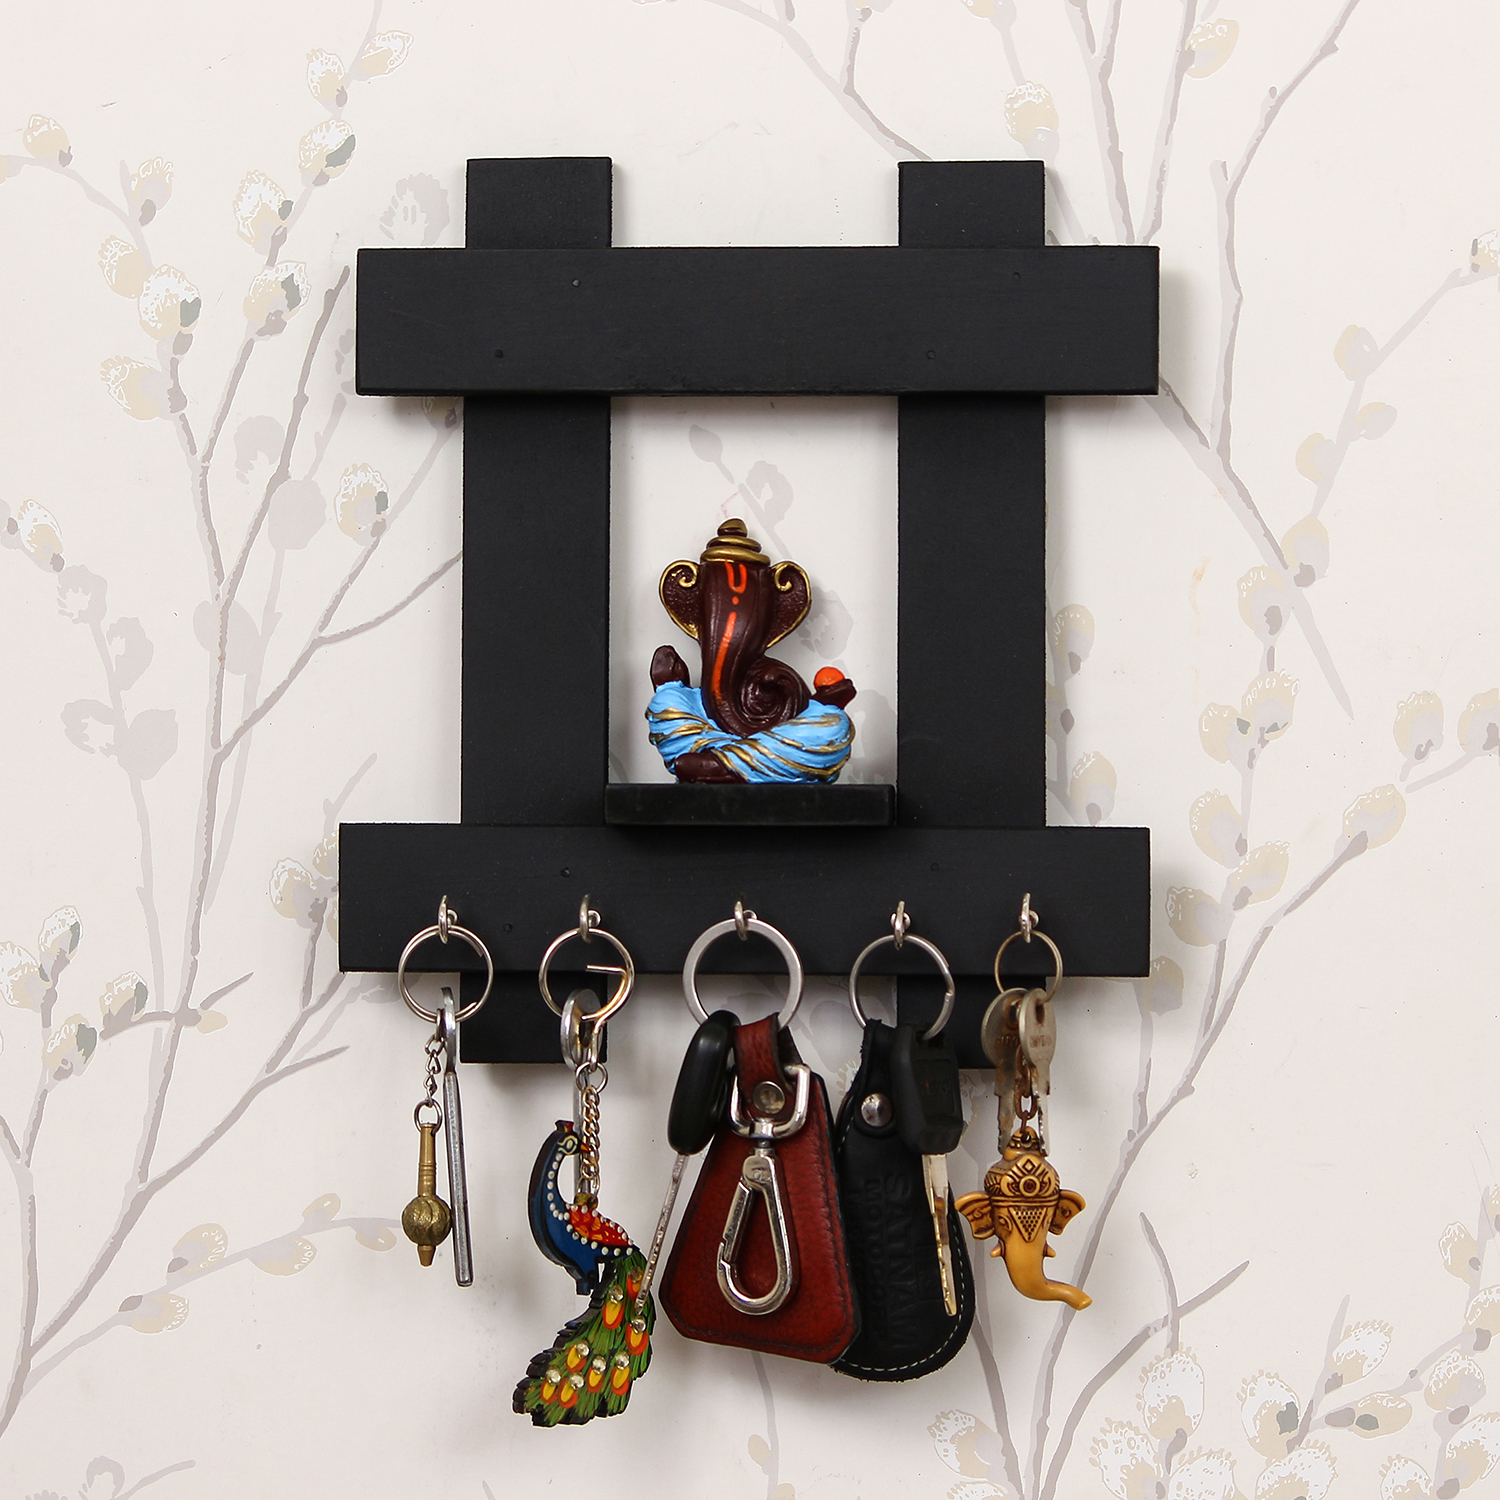 Lord Ganesha Wooden Keyholder with 5 Key Knobs Indian Home Decor